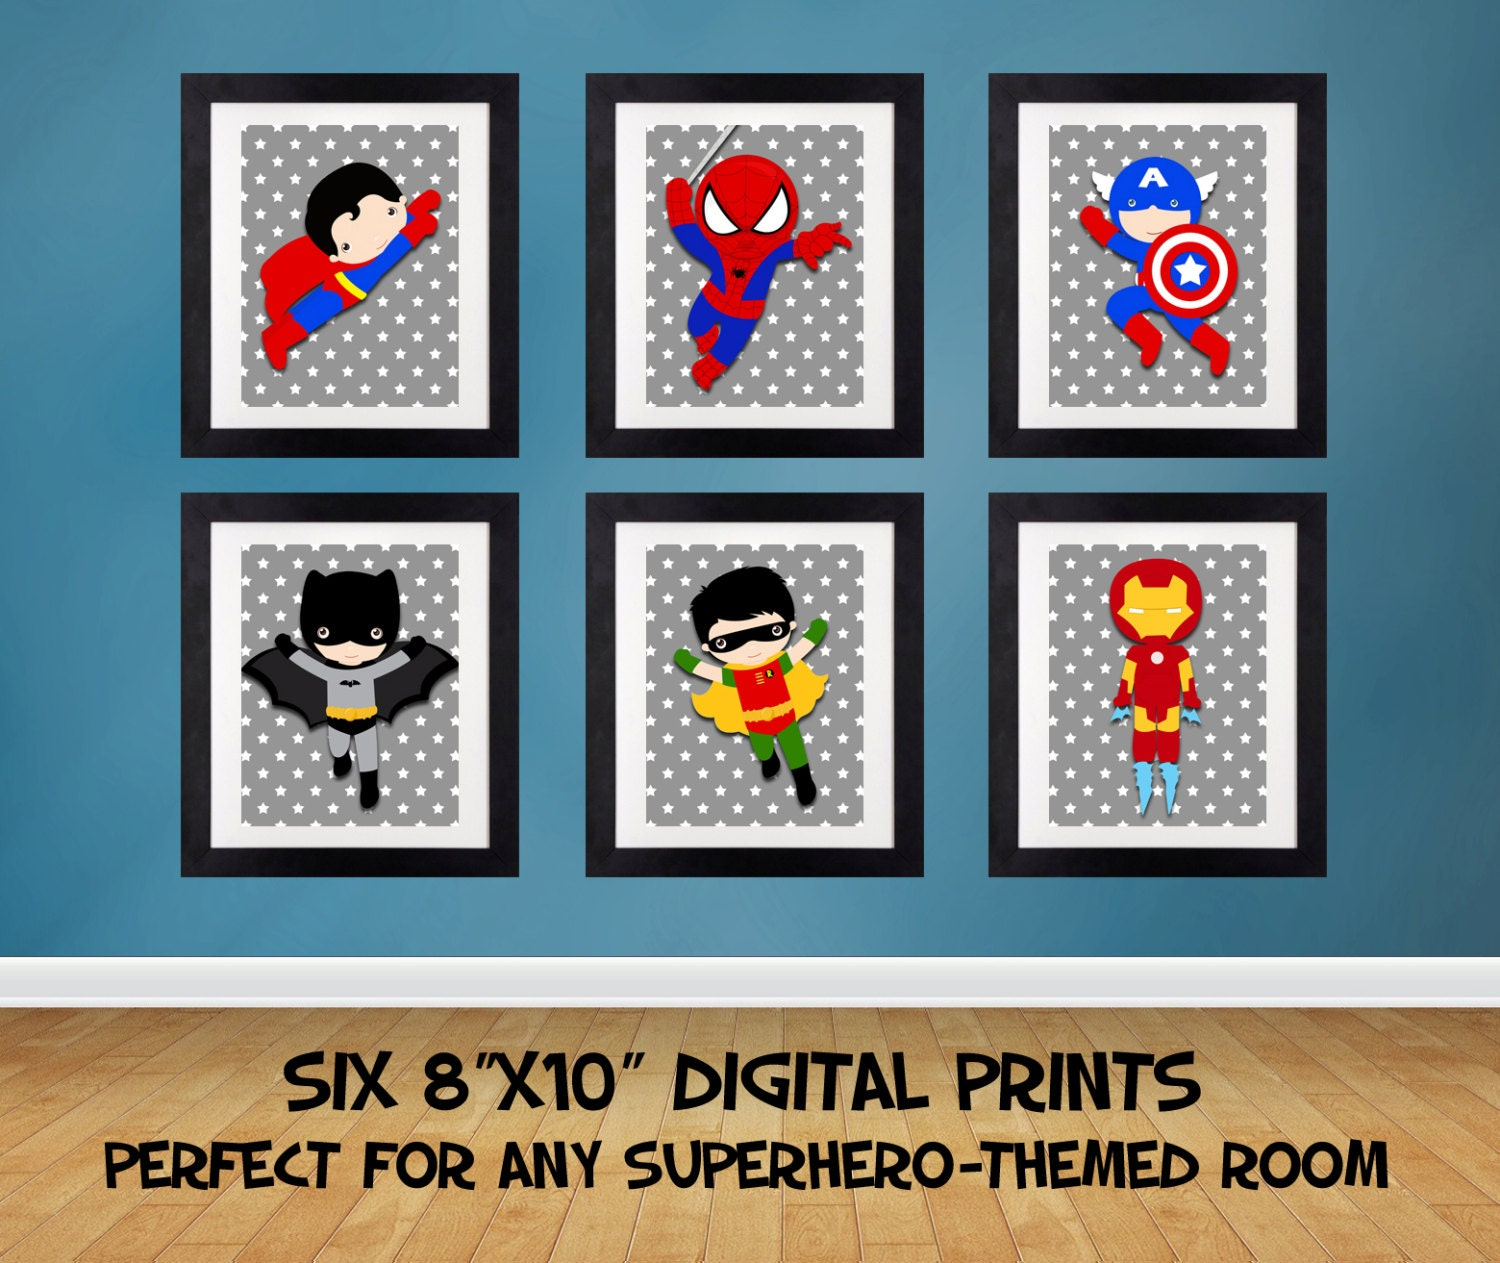 sale 25 off superhero wall art superhero posters bedroom. Black Bedroom Furniture Sets. Home Design Ideas